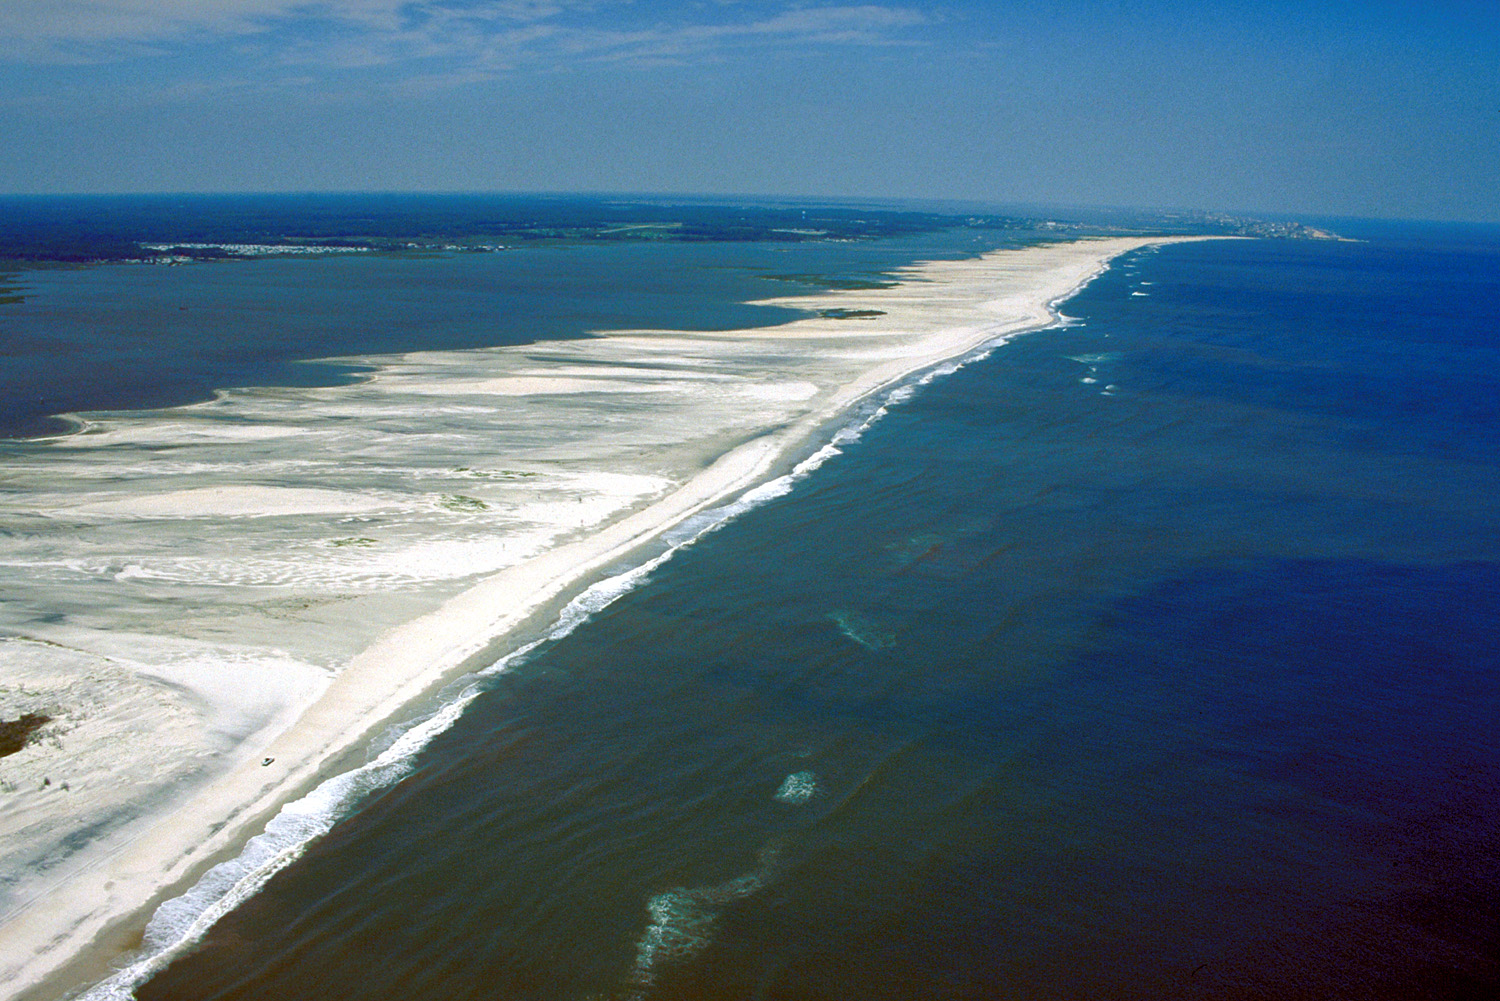 Assateague Island U.S. Army Corps of Engineers